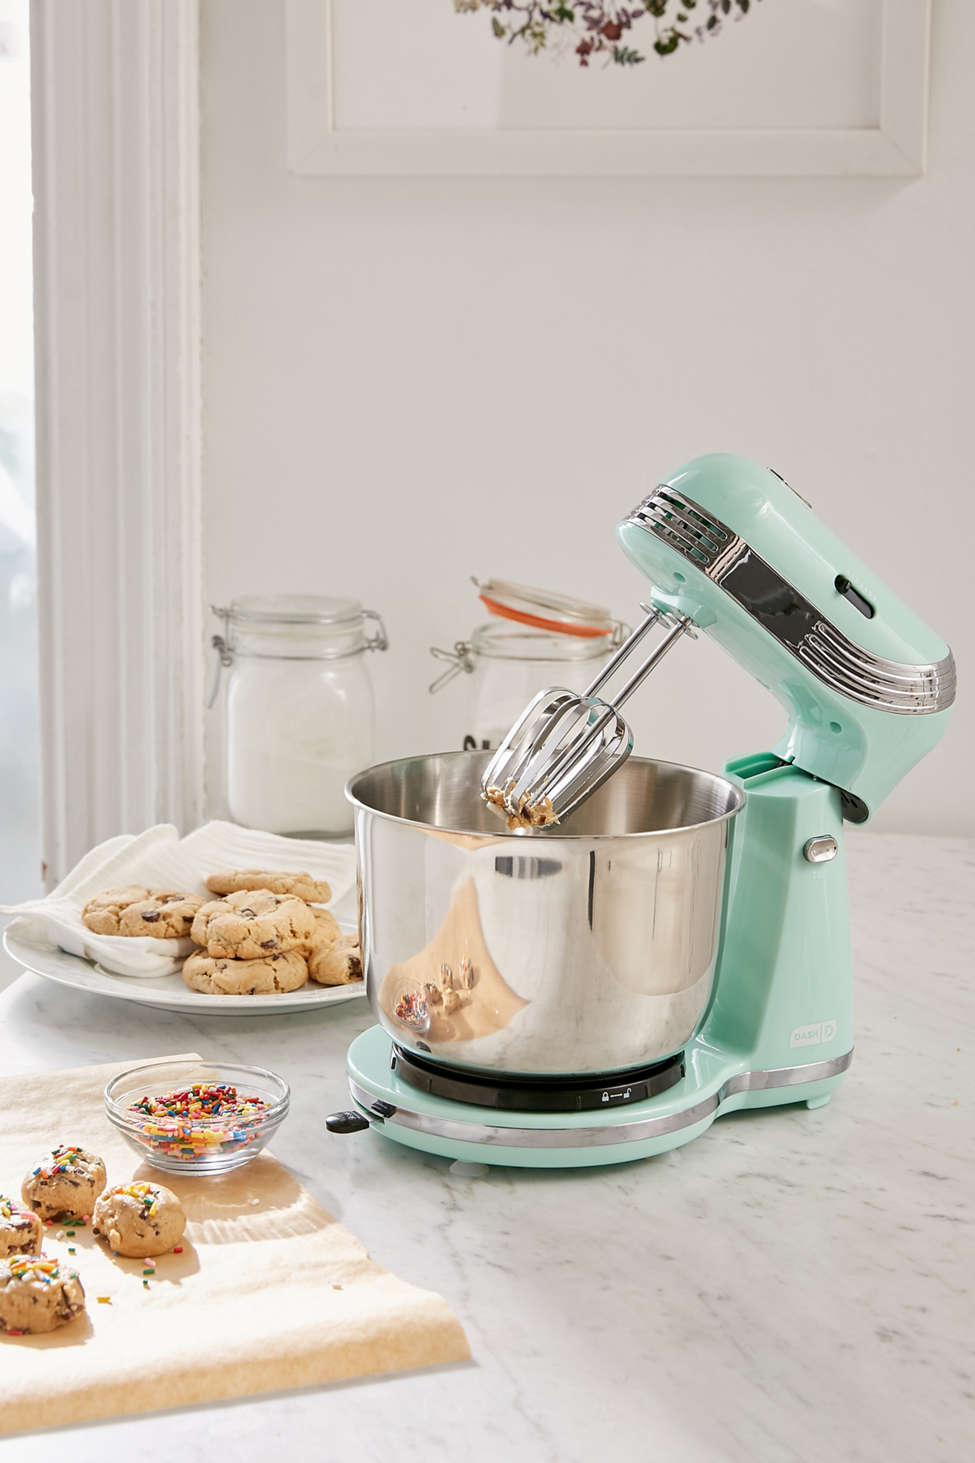 Slide View: 1: Everyday Standing Mixer